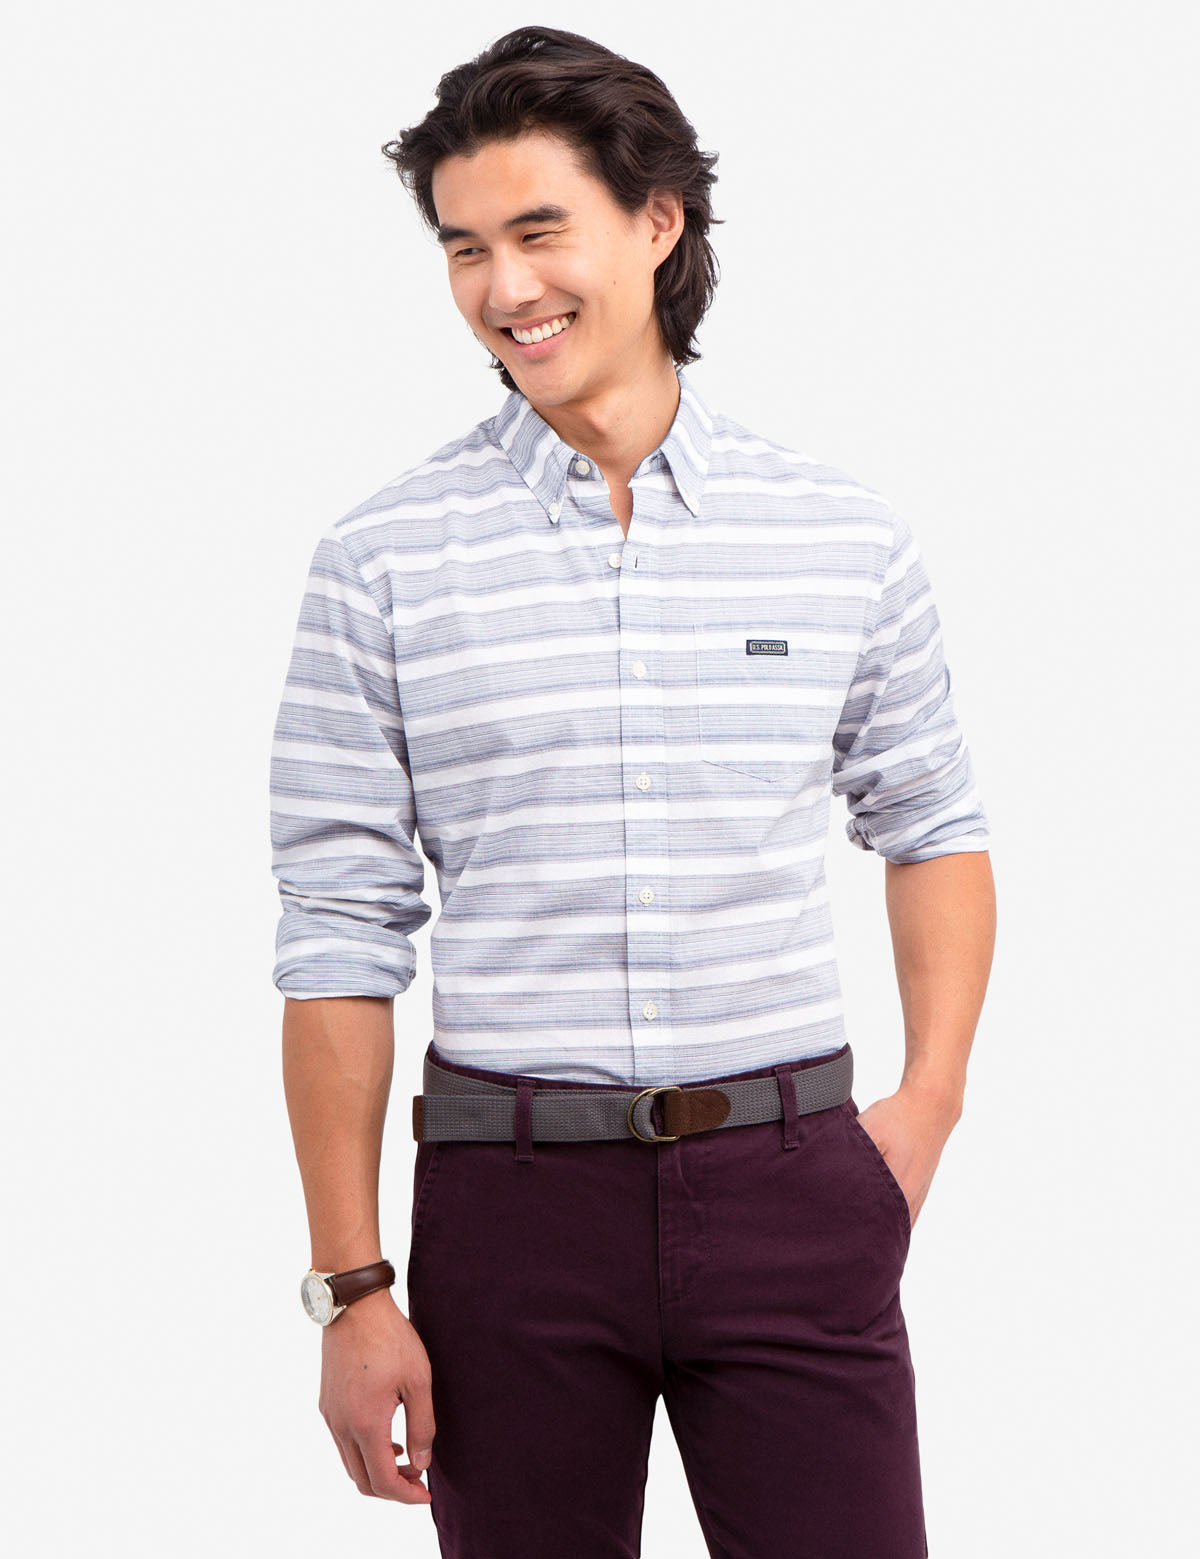 HORIZONTAL DOBBY SHIRT - U.S. Polo Assn.